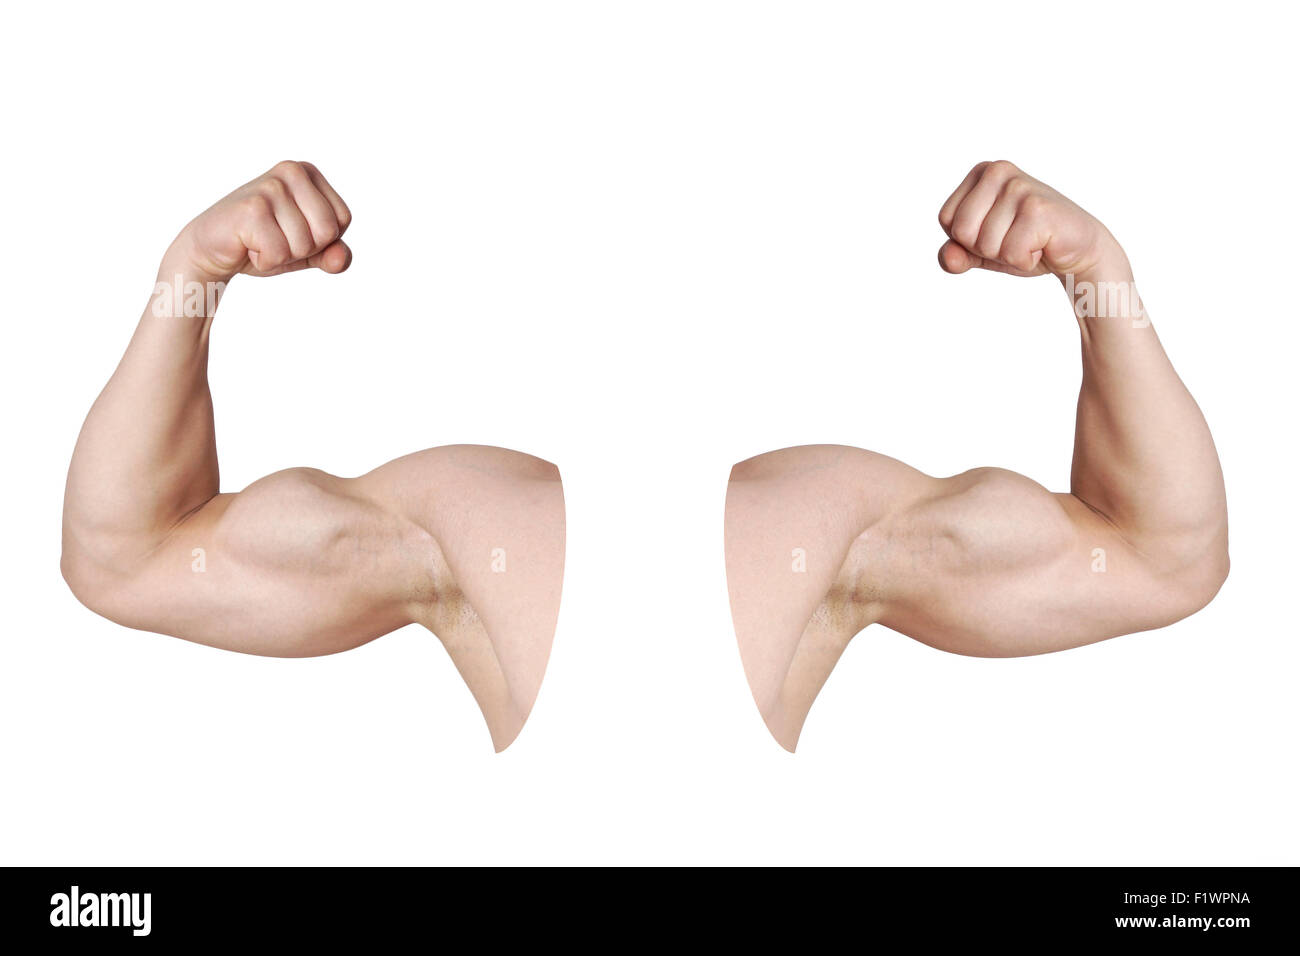 male arms with flexed biceps muscles - Stock Image